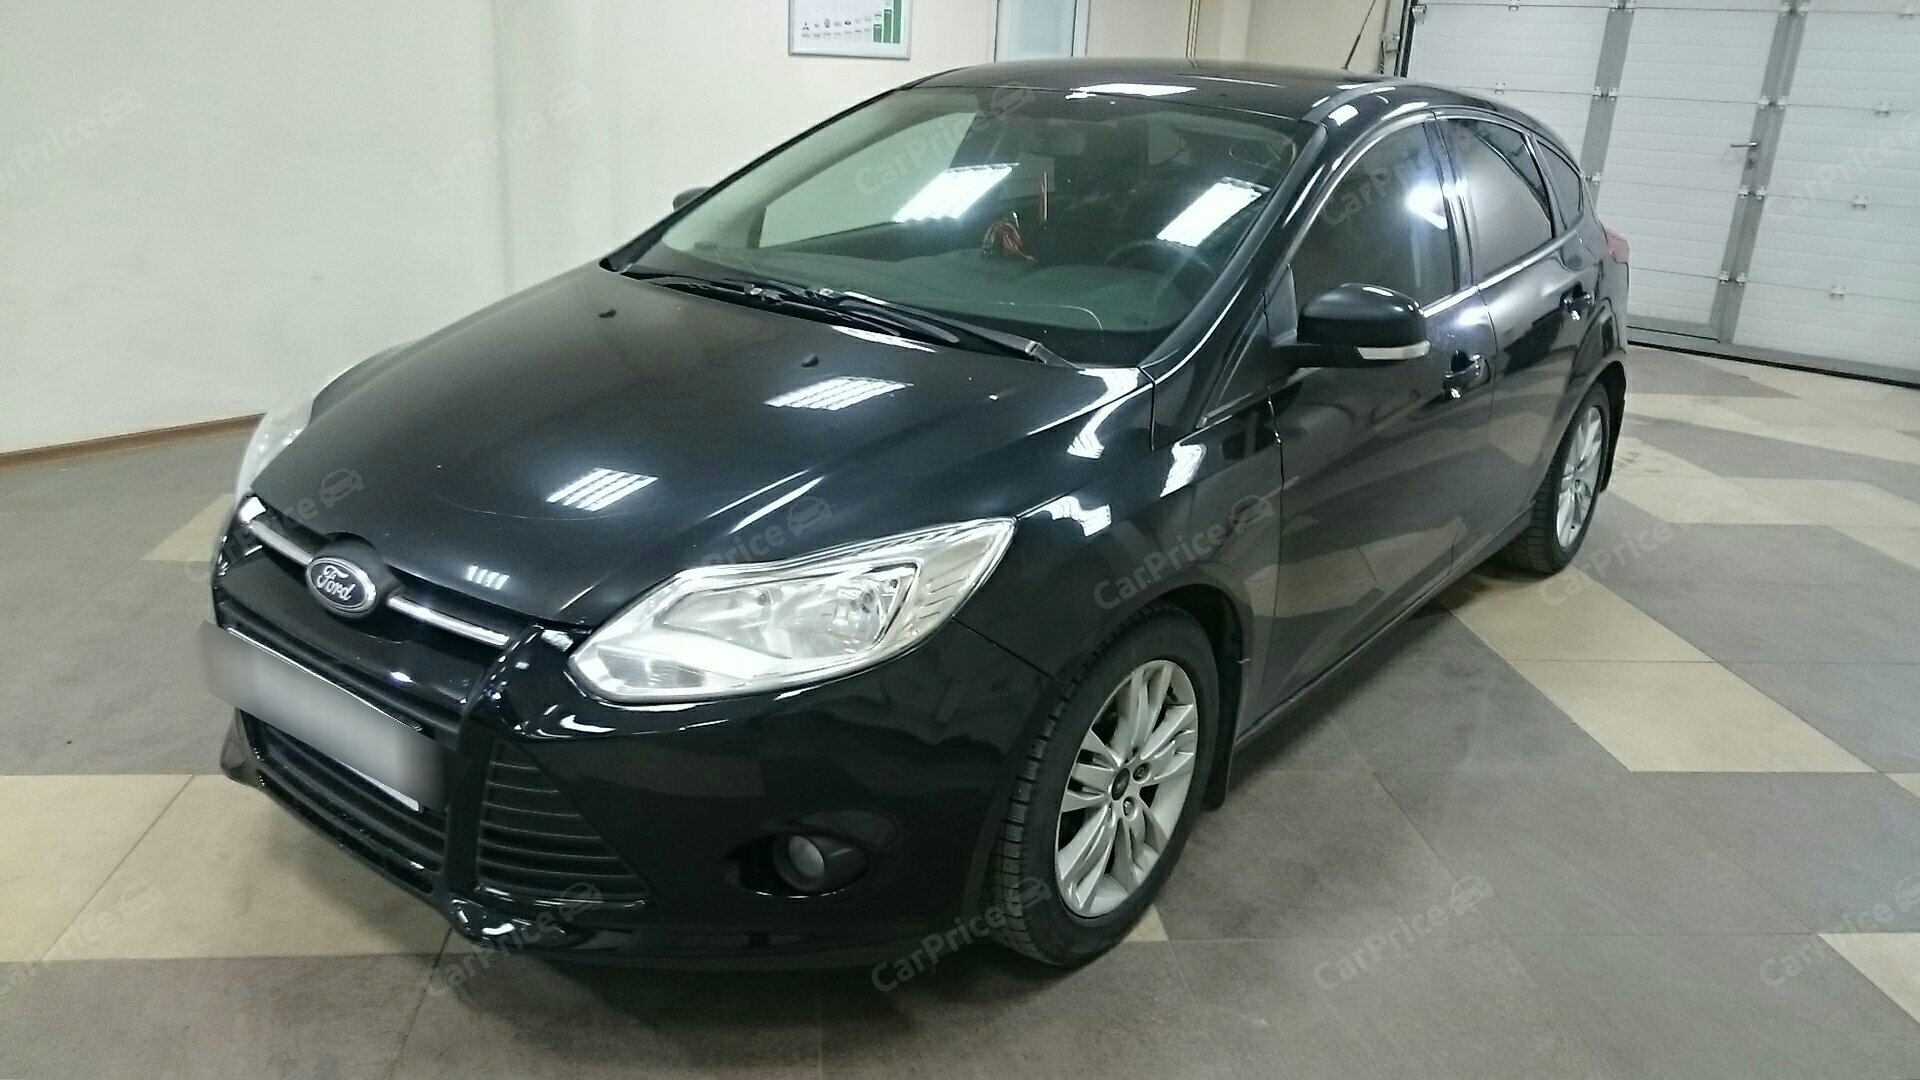 Ford Focus III 2.0 AT (150 л.с.) [2012]